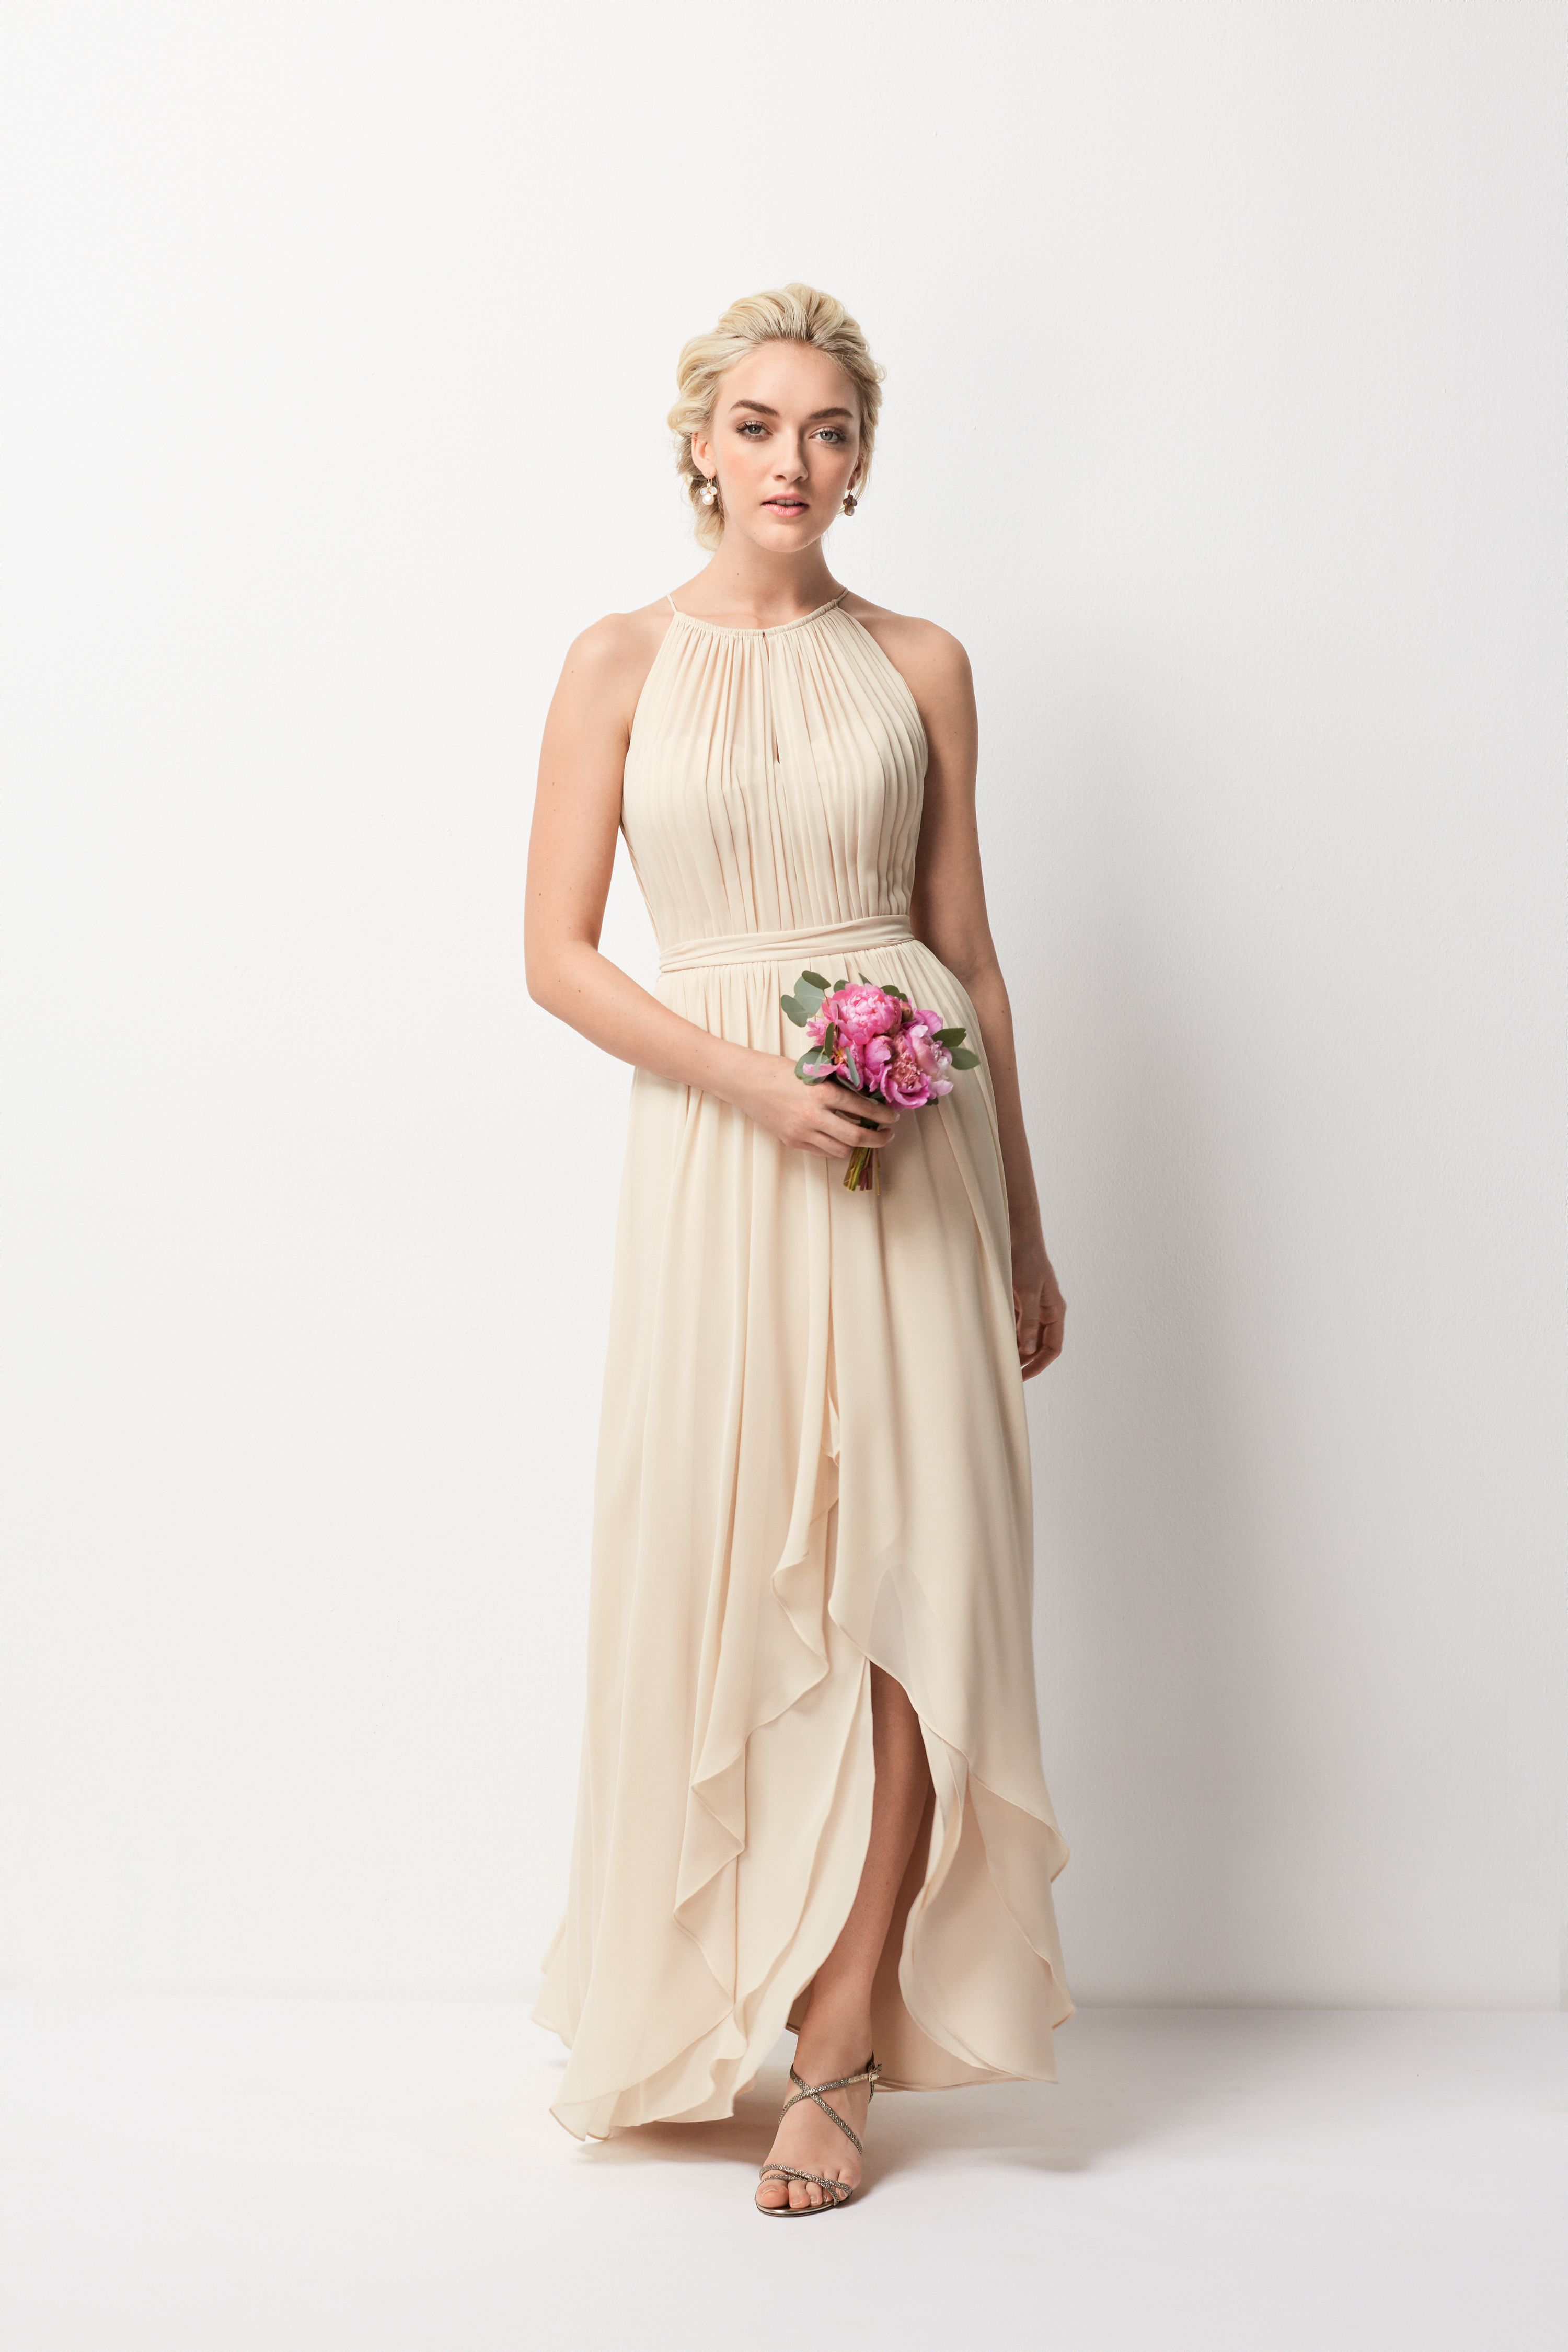 085e71ed668  watterswtoo Bridesmaids Dress Style 209 Available at iCON  301-355-4741 or  visit iconbridalformal.com !